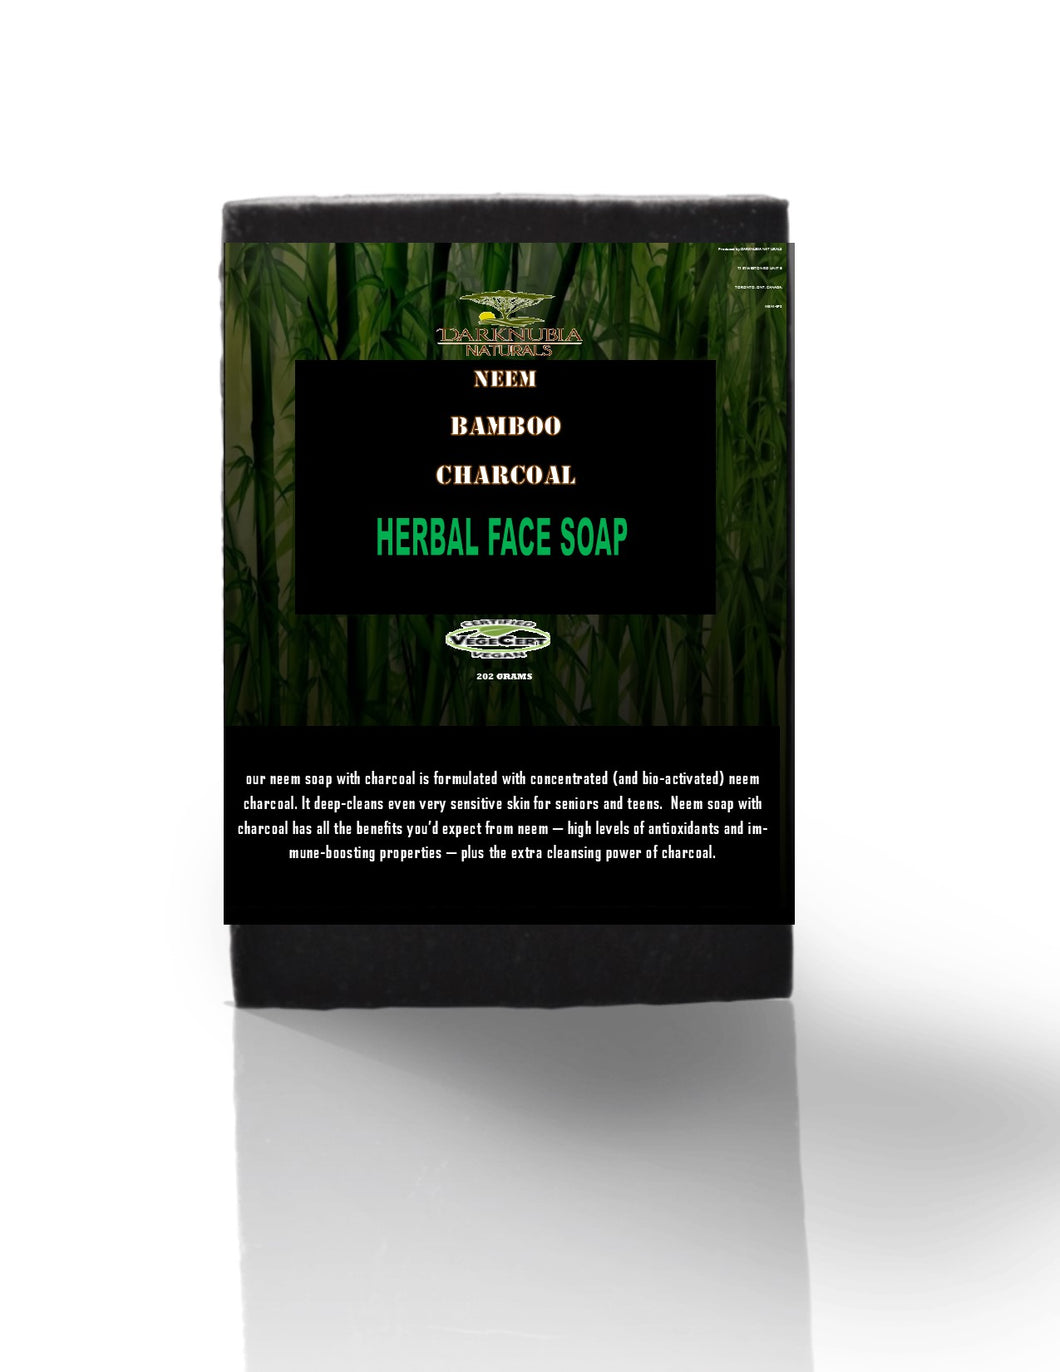 Neem bamboo and charcoal face soap